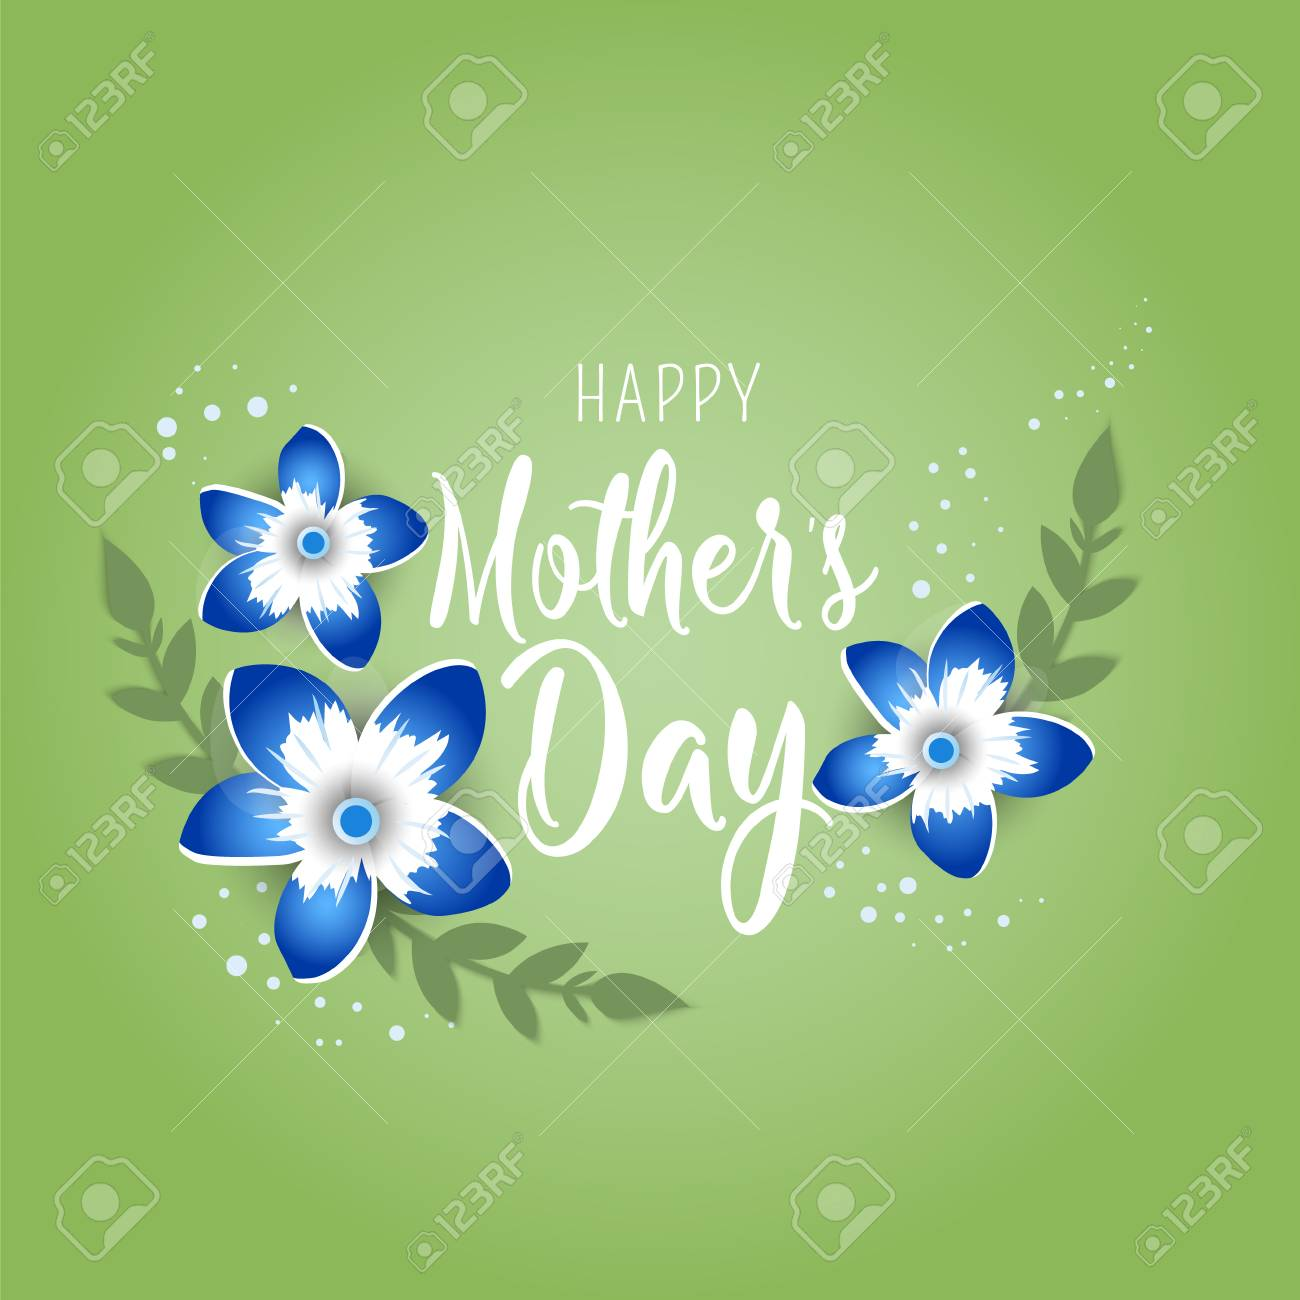 Happy Mothers Day Poster3d Illustration With Red Origami Flowers